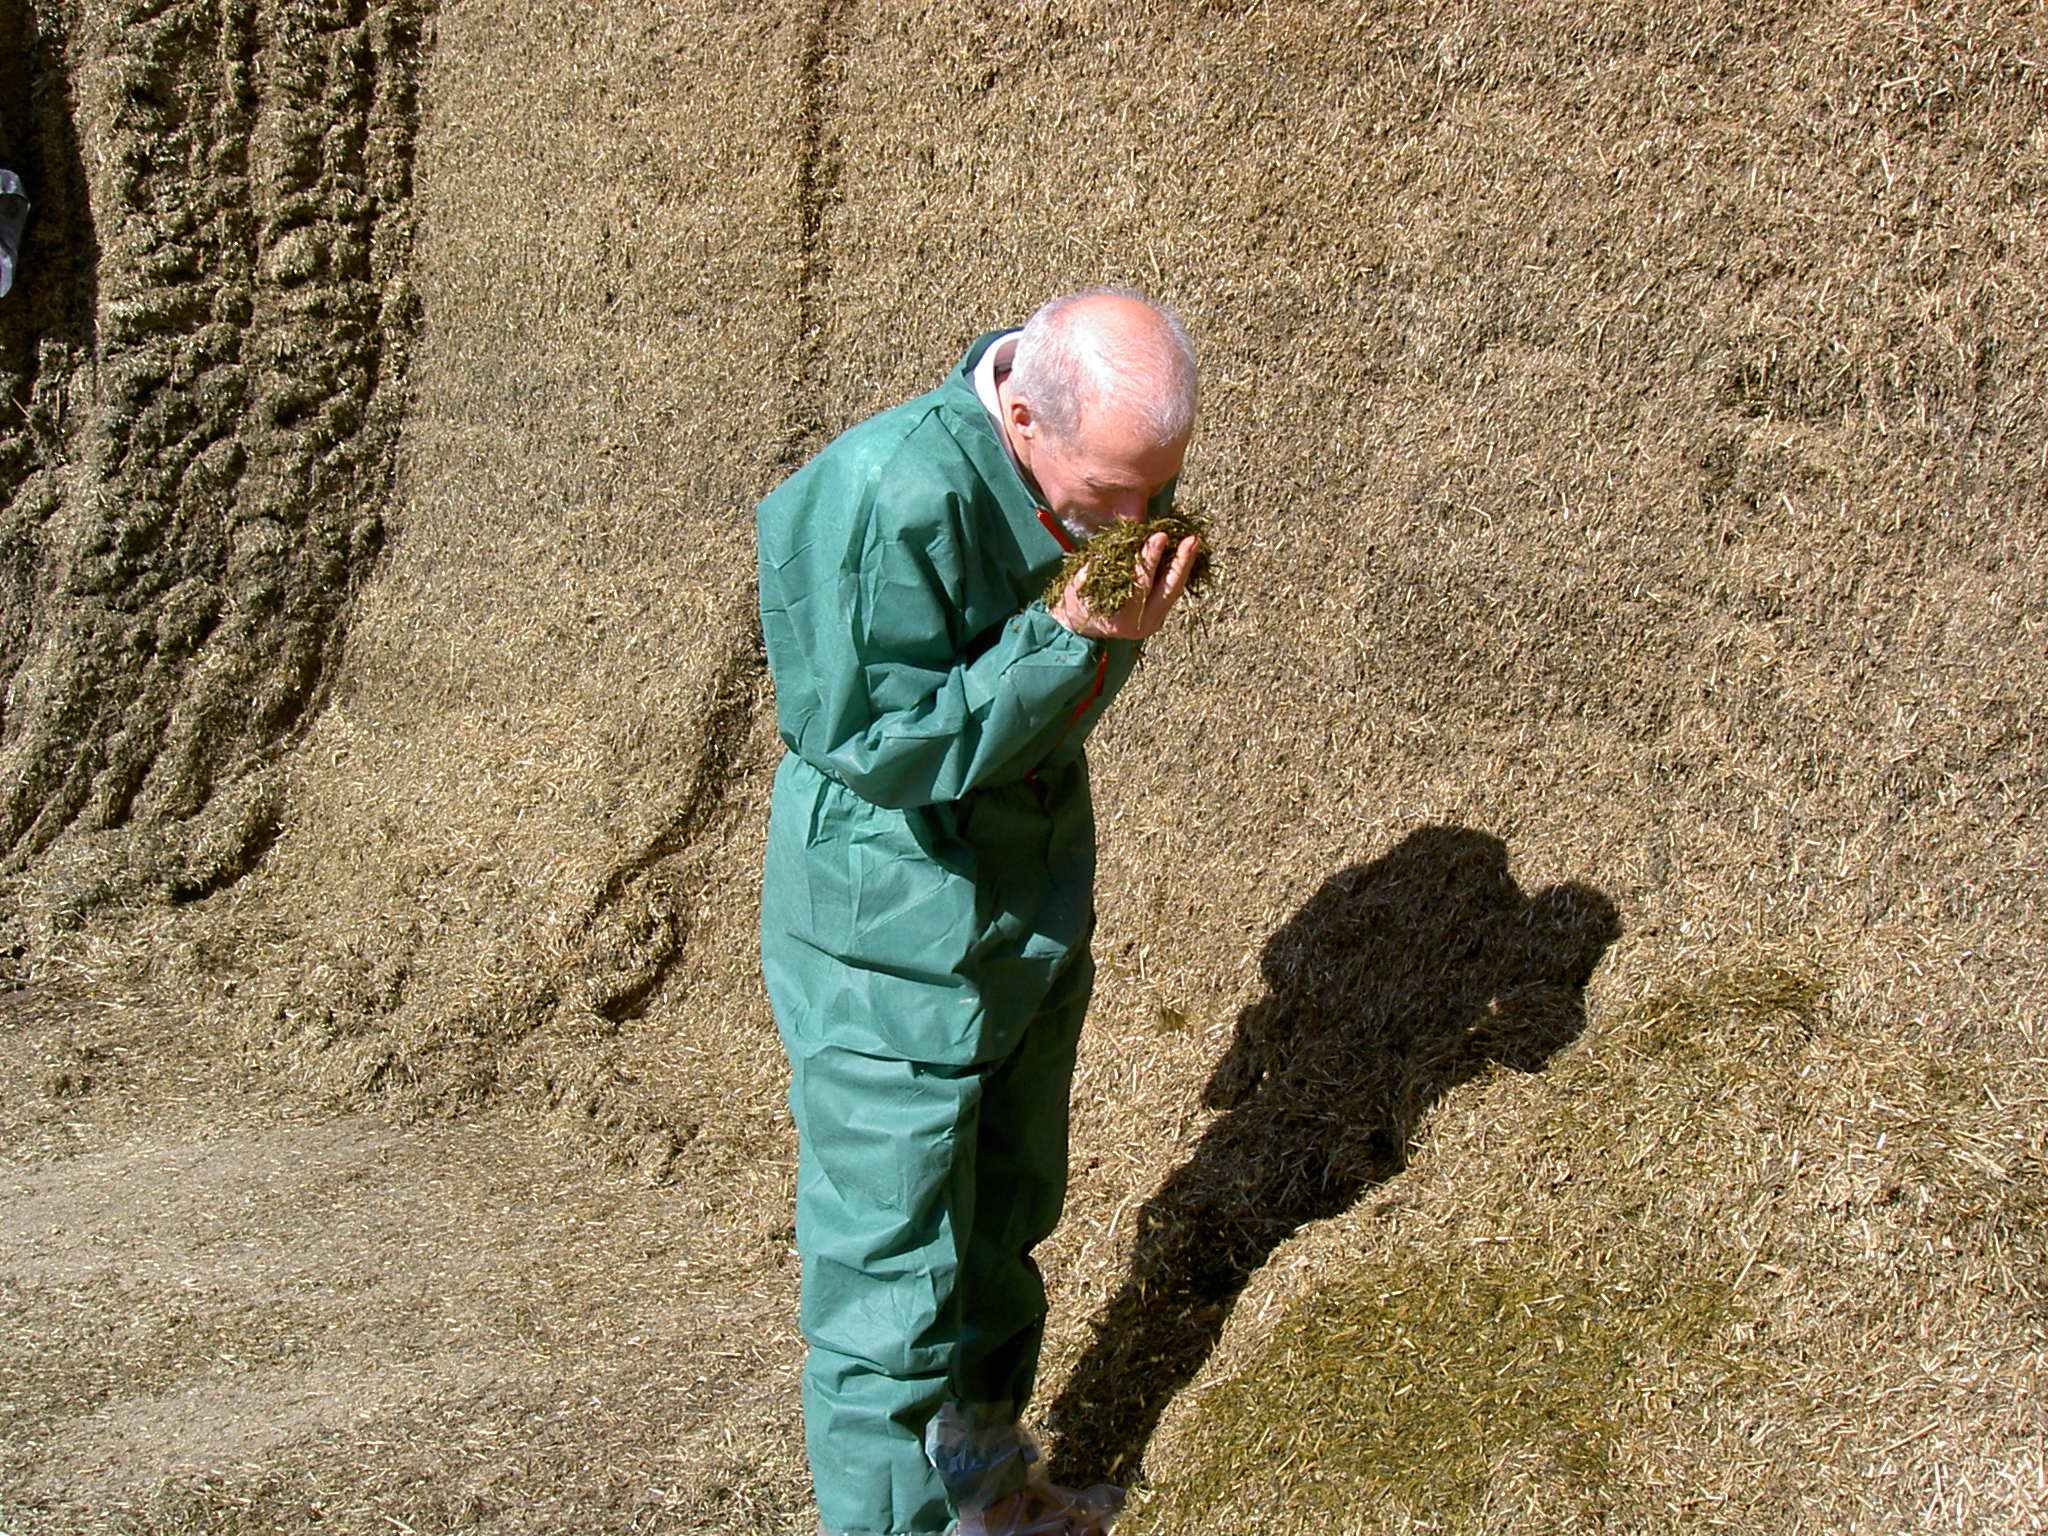 Silages treated with KE-agrar have a pleasant aroma.